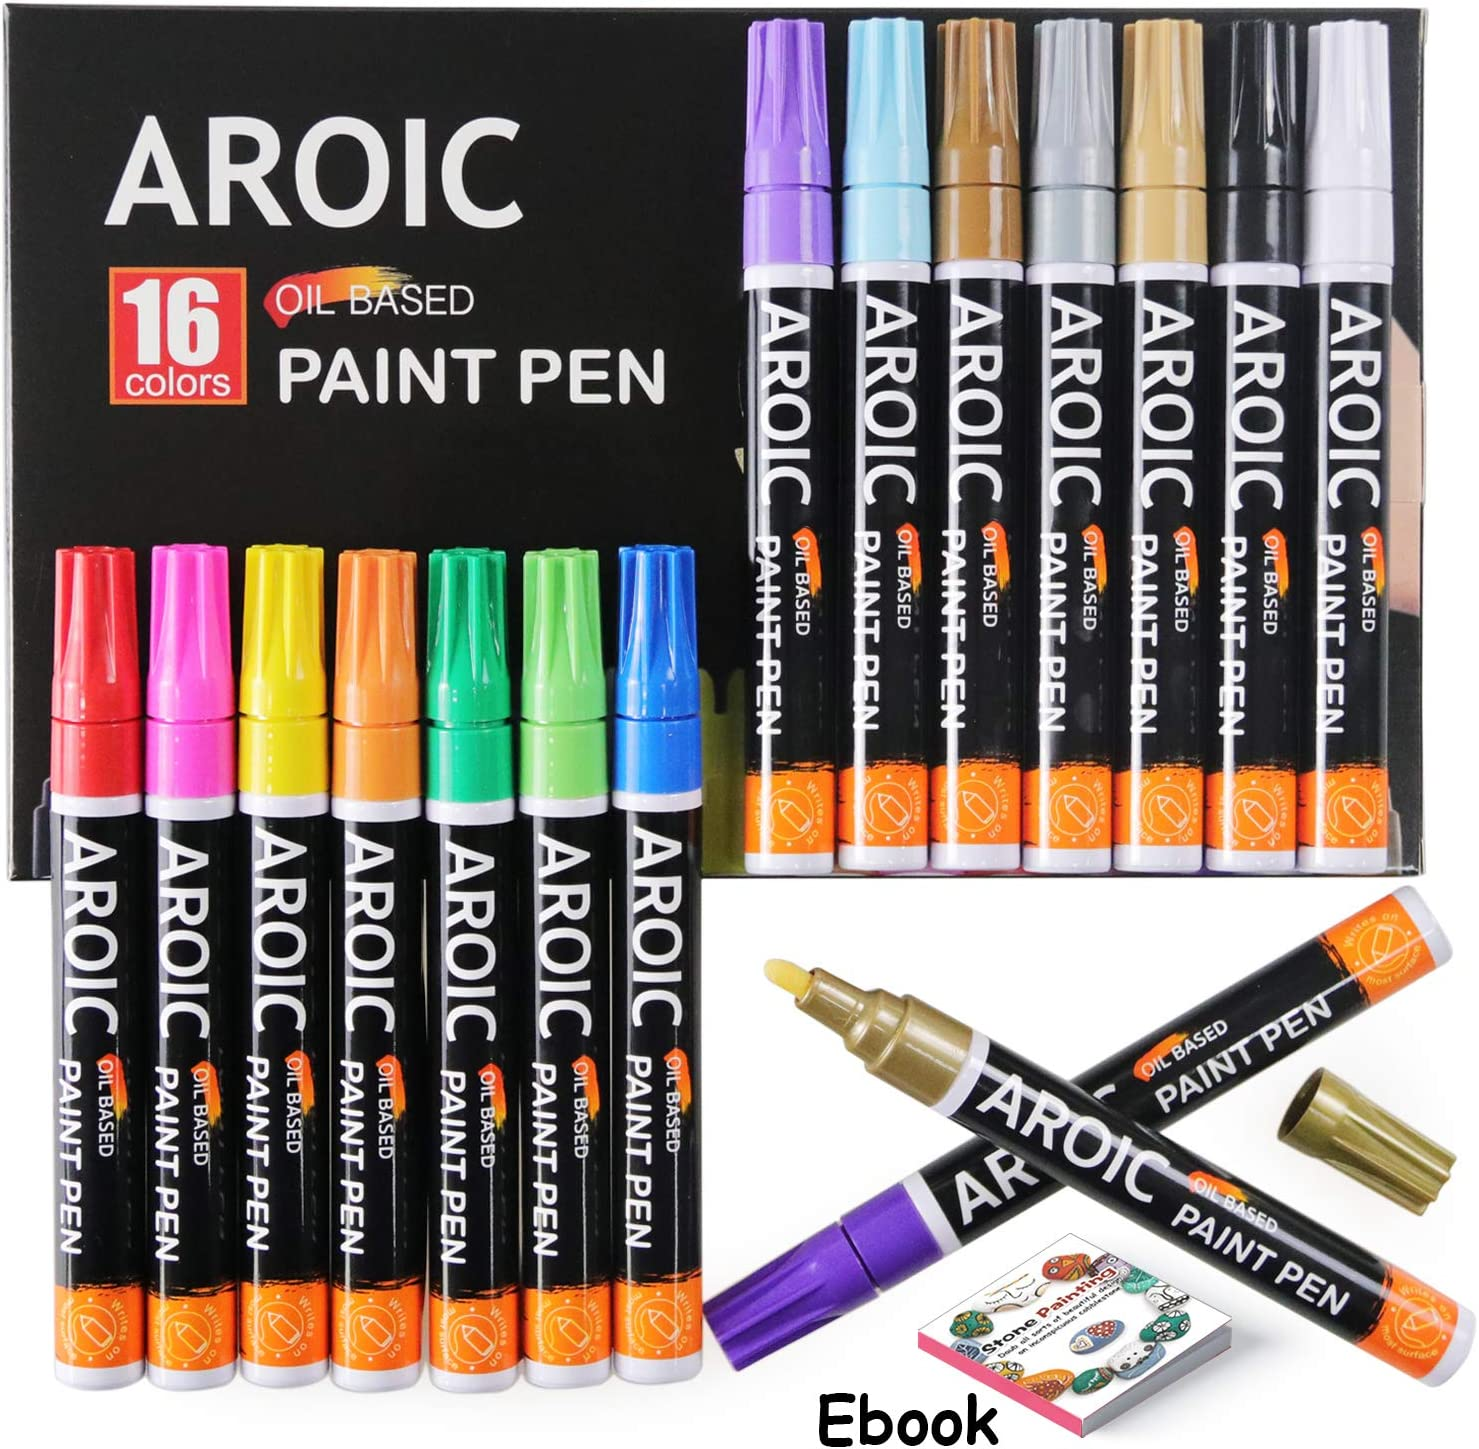 Paint Pens for Rock Painting - Write On Anything. Paint pens for Rock, Wood, Metal, Plastic, Glass, Canvas, Ceramic and More.(16 Pack)